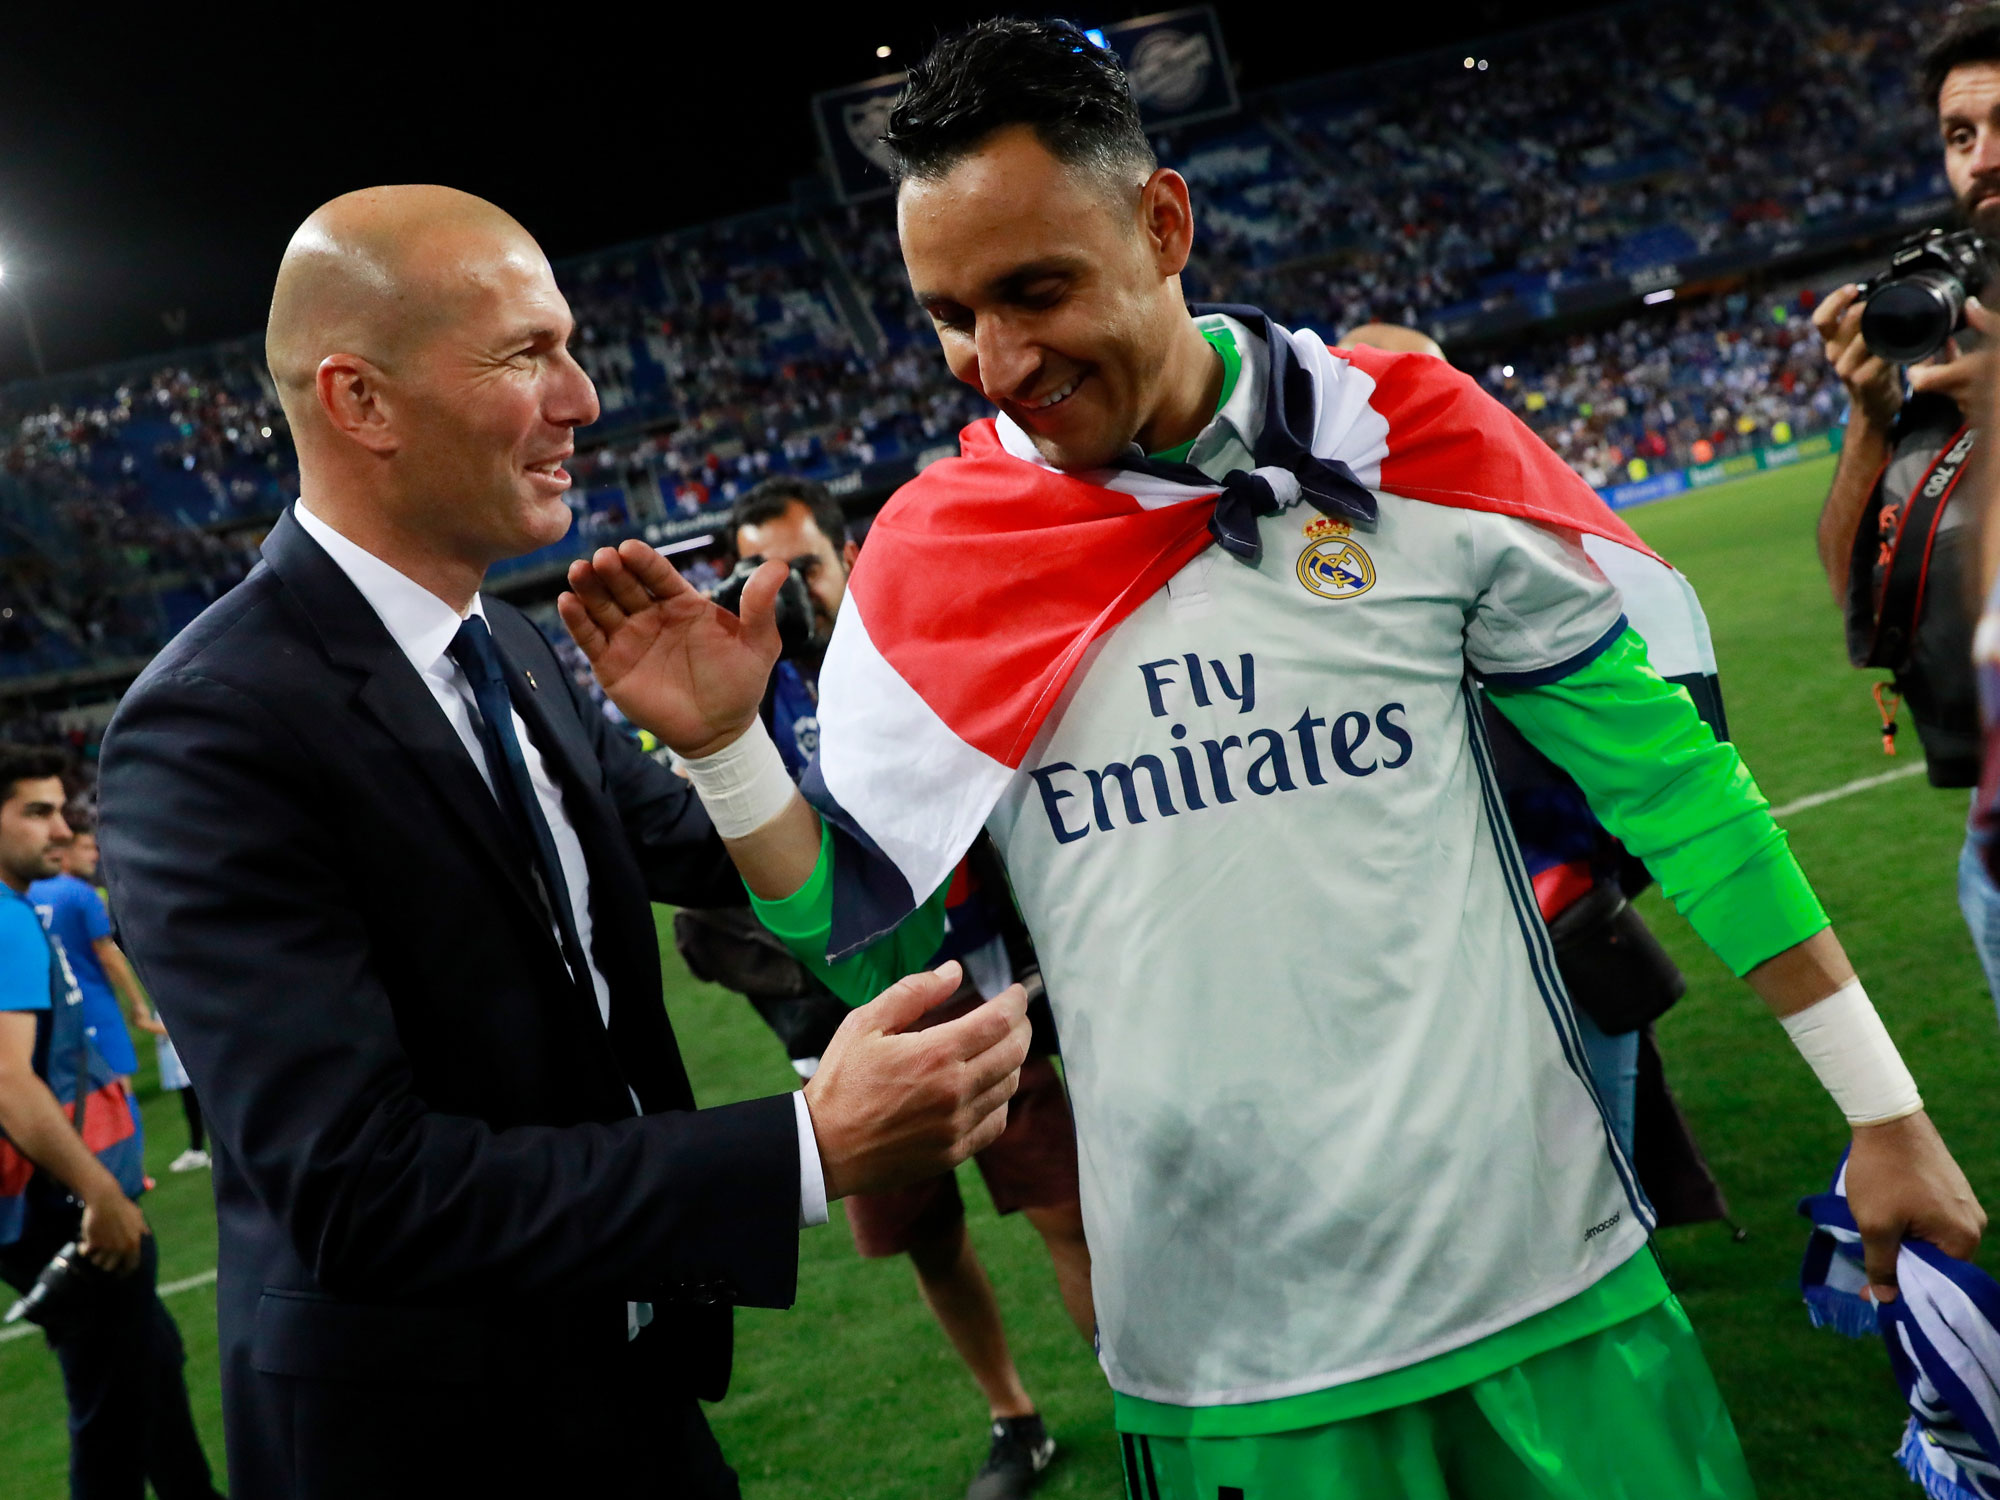 Keylor Navas and Zinedine Zidane celebrate winning La Liga